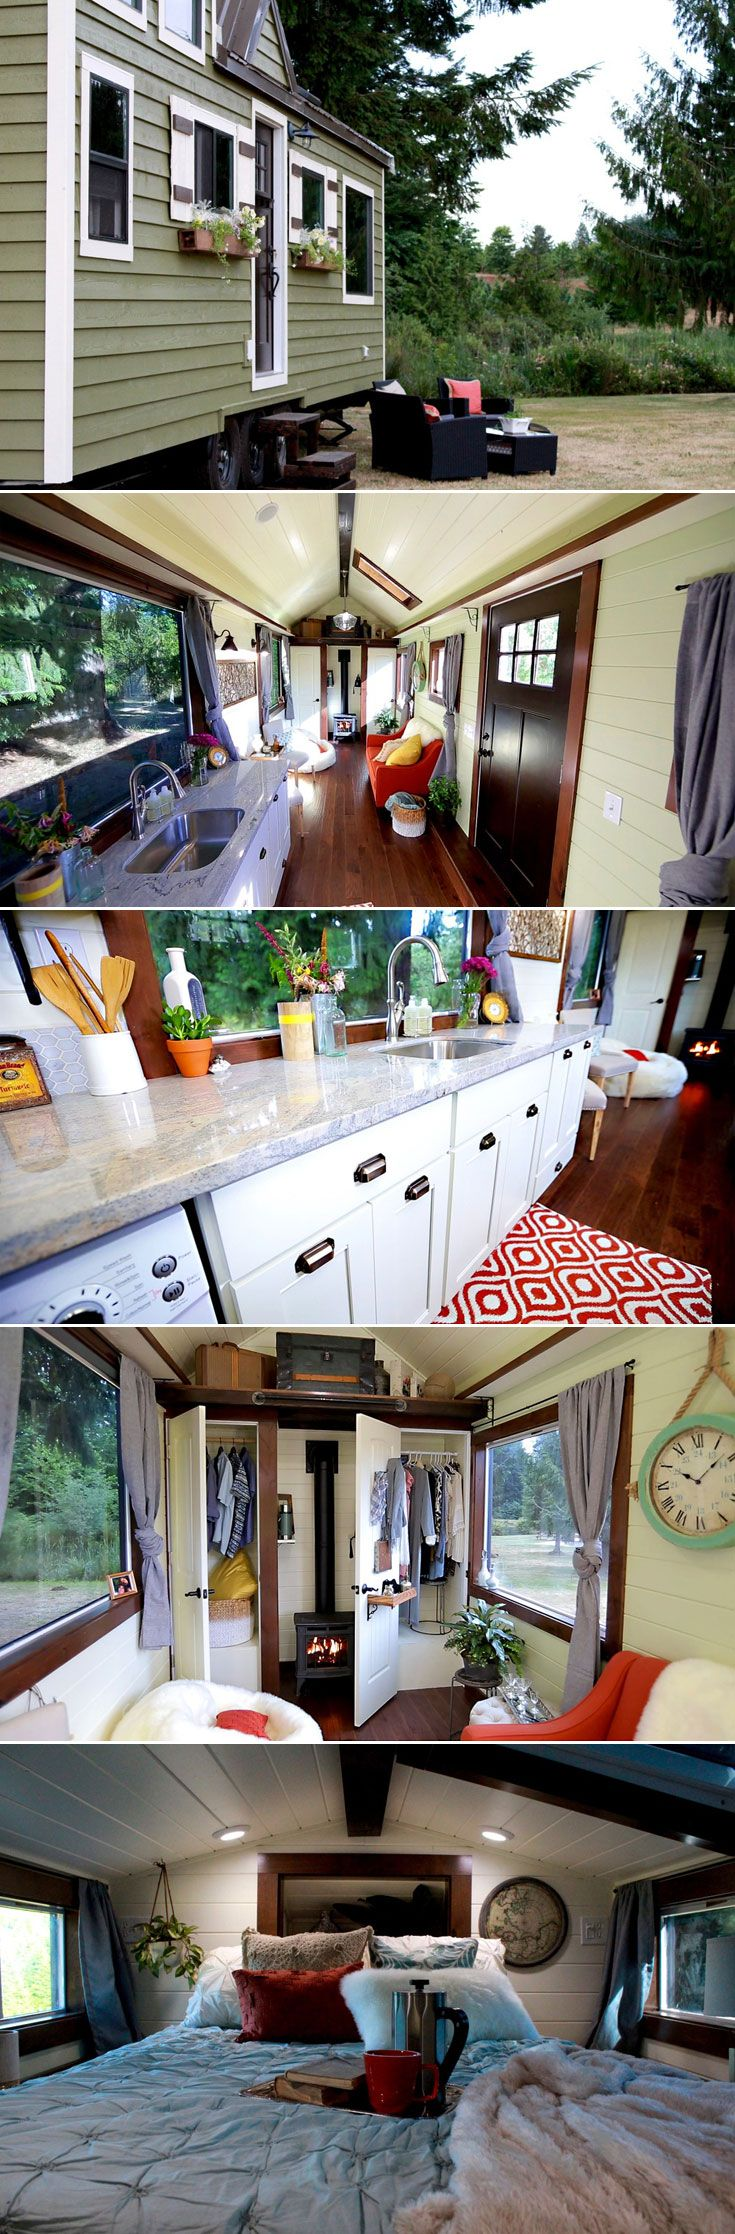 Created by Tiny Heirloom, the builders behind HGTV's Tiny Luxury.  This tiny home's interior features a bright kitchen with white cabinets and a light granite countertop, a living room with two closets and fireplace, a loft bedroom, and a bathroom with a small clawfoot tub!